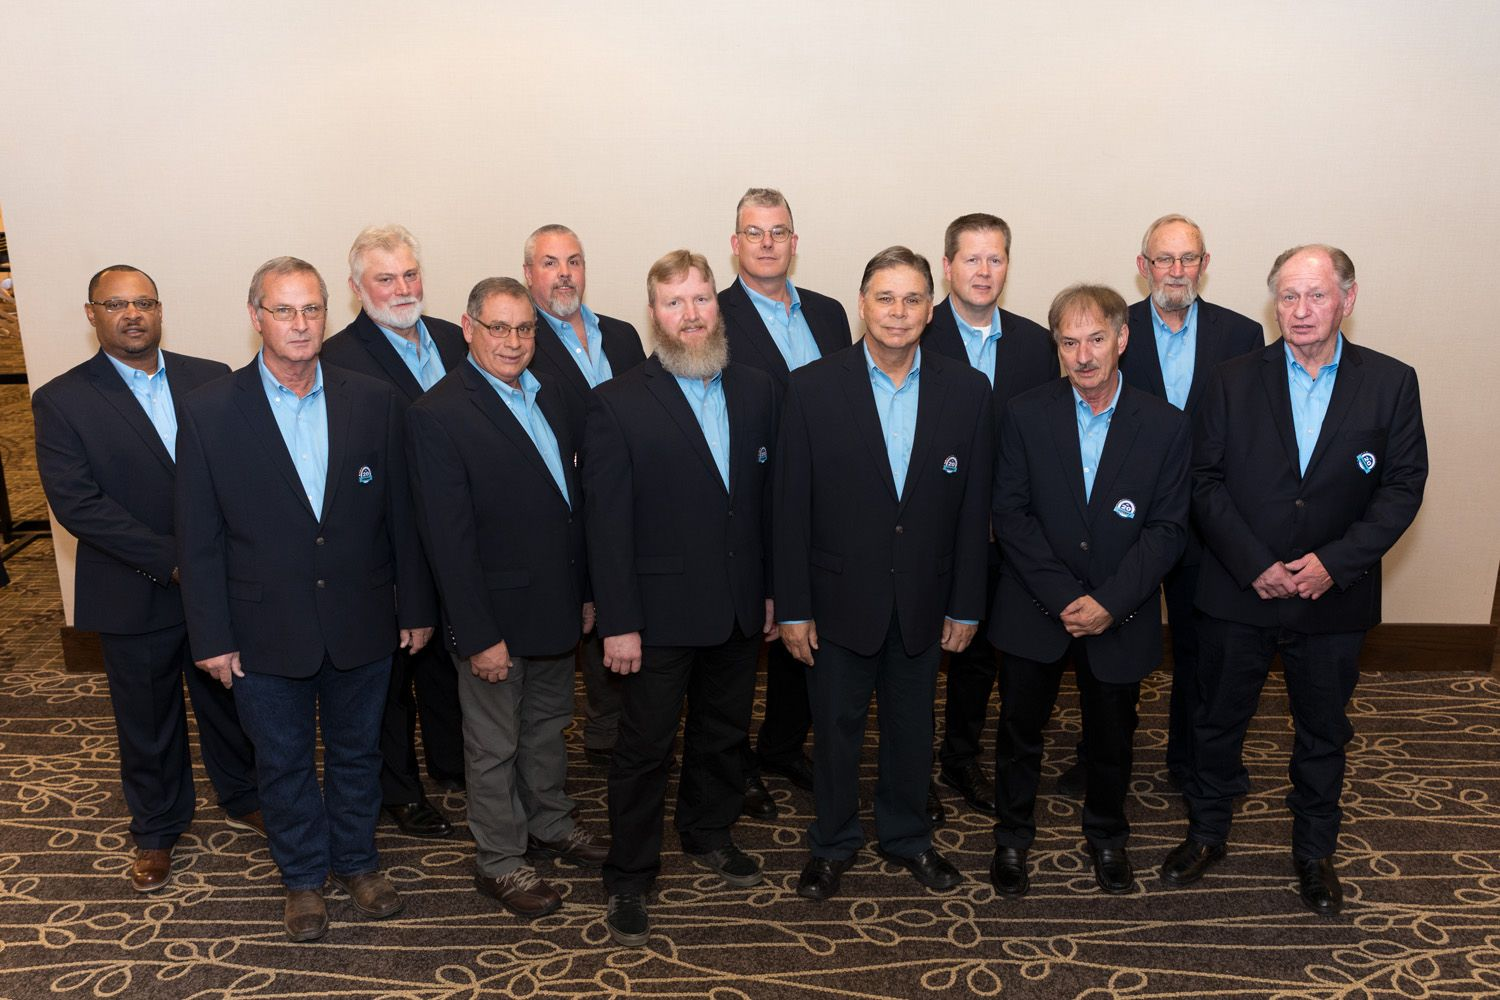 Penske Logistics Inducts 15 More Safe Truck Drivers into Its Driver Wall of Fame